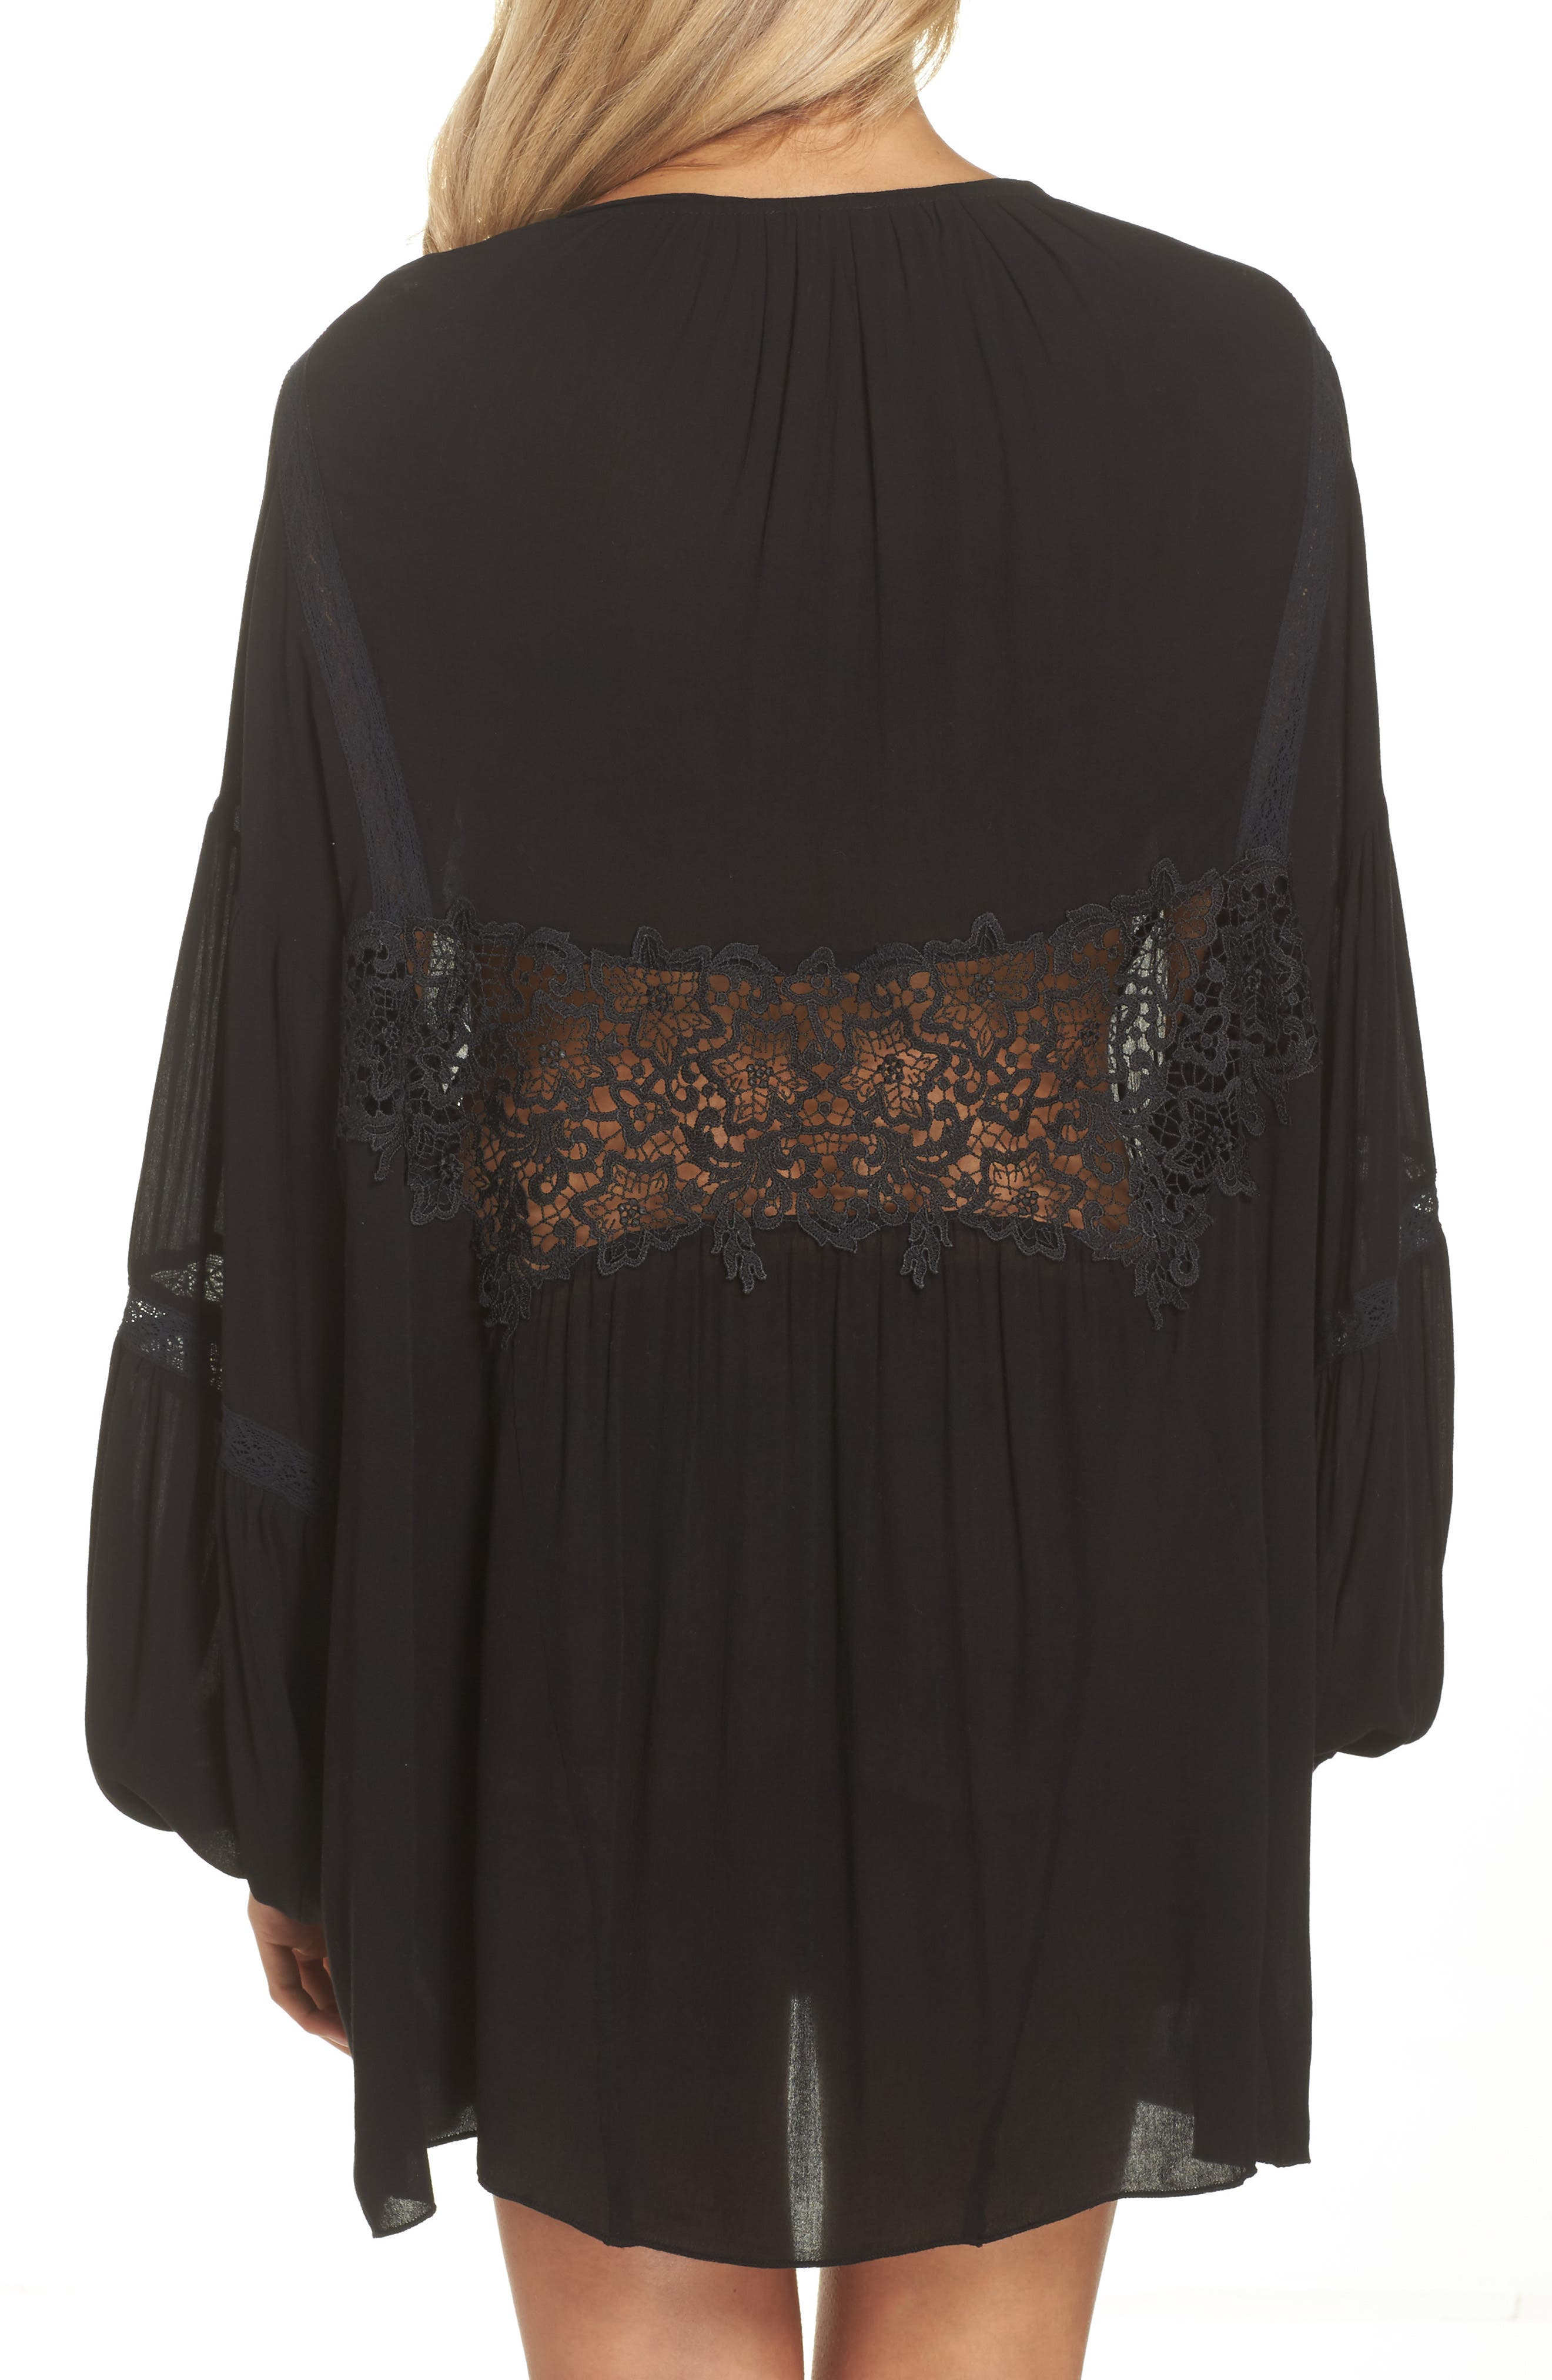 Alternate Image 2  - Free People Intimately FP Sleepin' 'n' Dreamin' Lace Inset Top